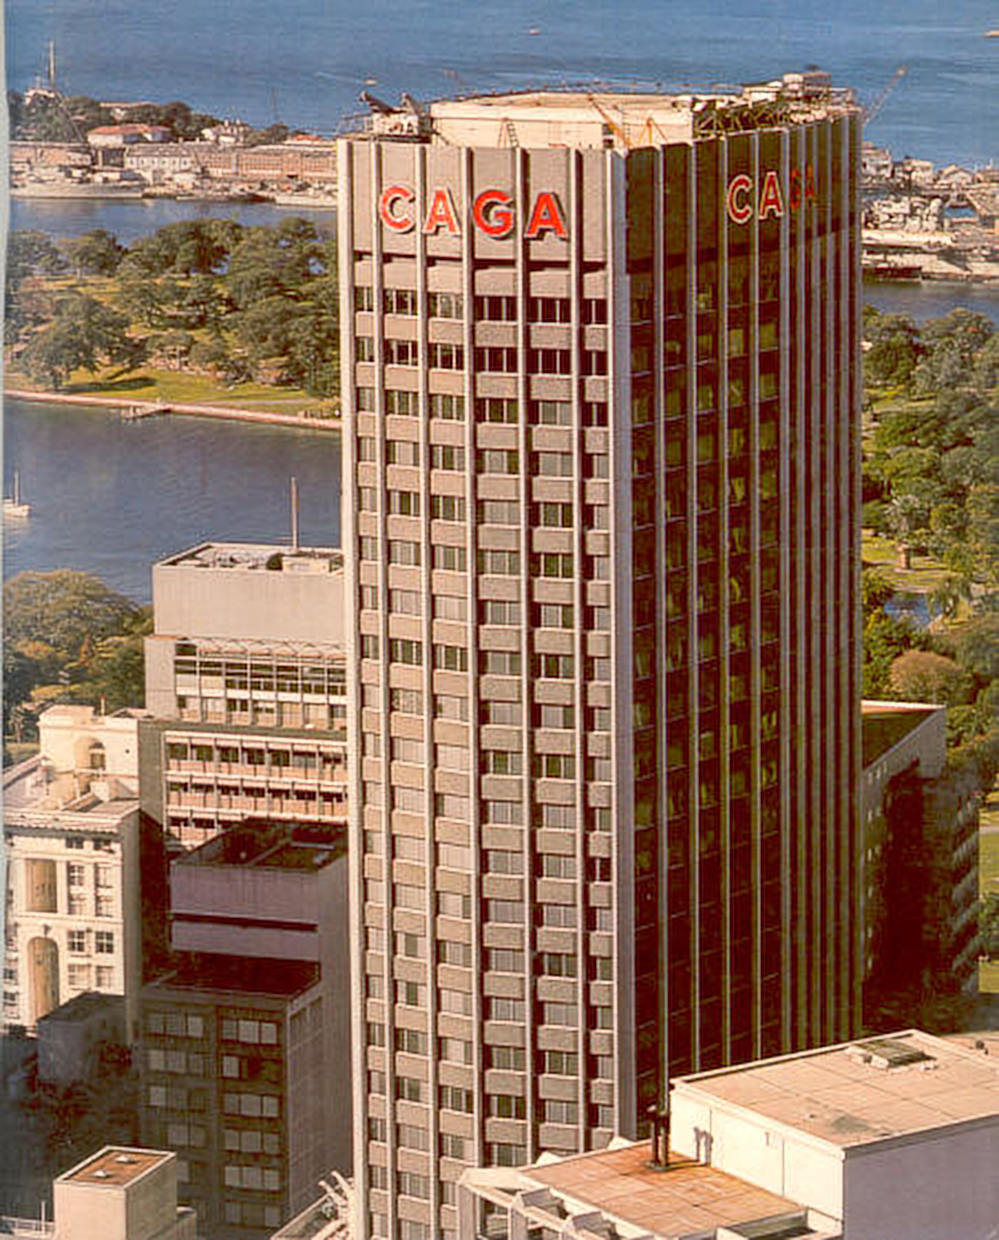 The 30-storey Caga House Sydney was completed in 1977.